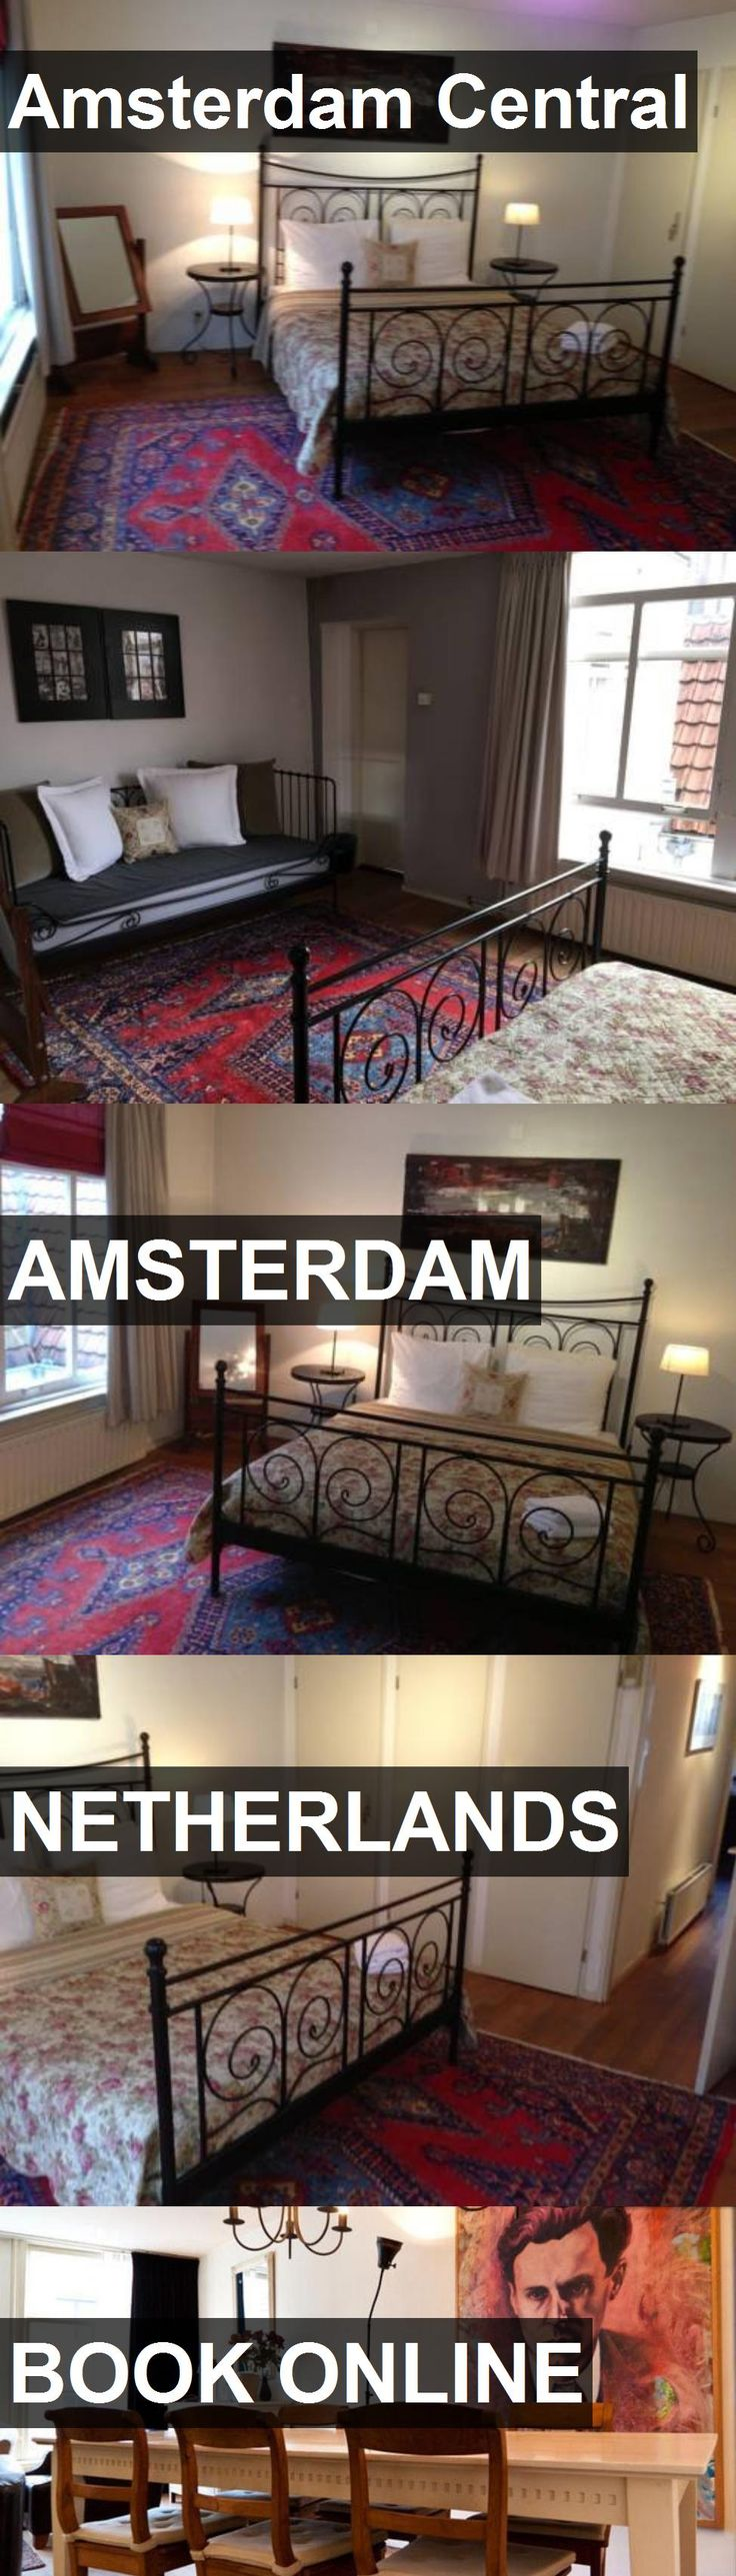 Hotel Amsterdam Central in Amsterdam, Netherlands. For more information, photos, reviews and best prices please follow the link. #Netherlands #Amsterdam #travel #vacation #hotel